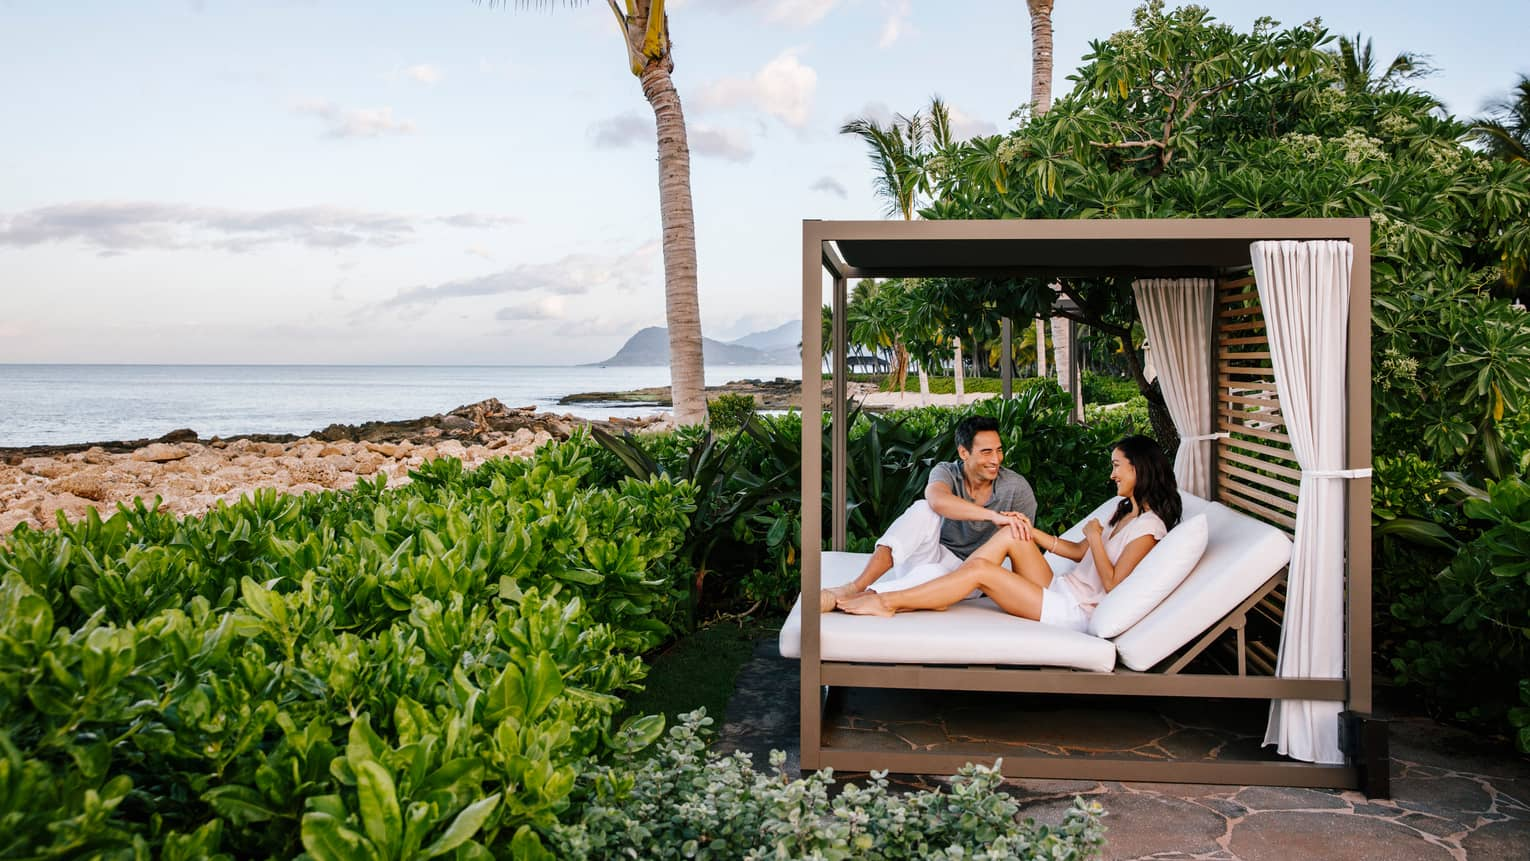 Man and woman relax on patio bed under wood cabana by large hedge, beach